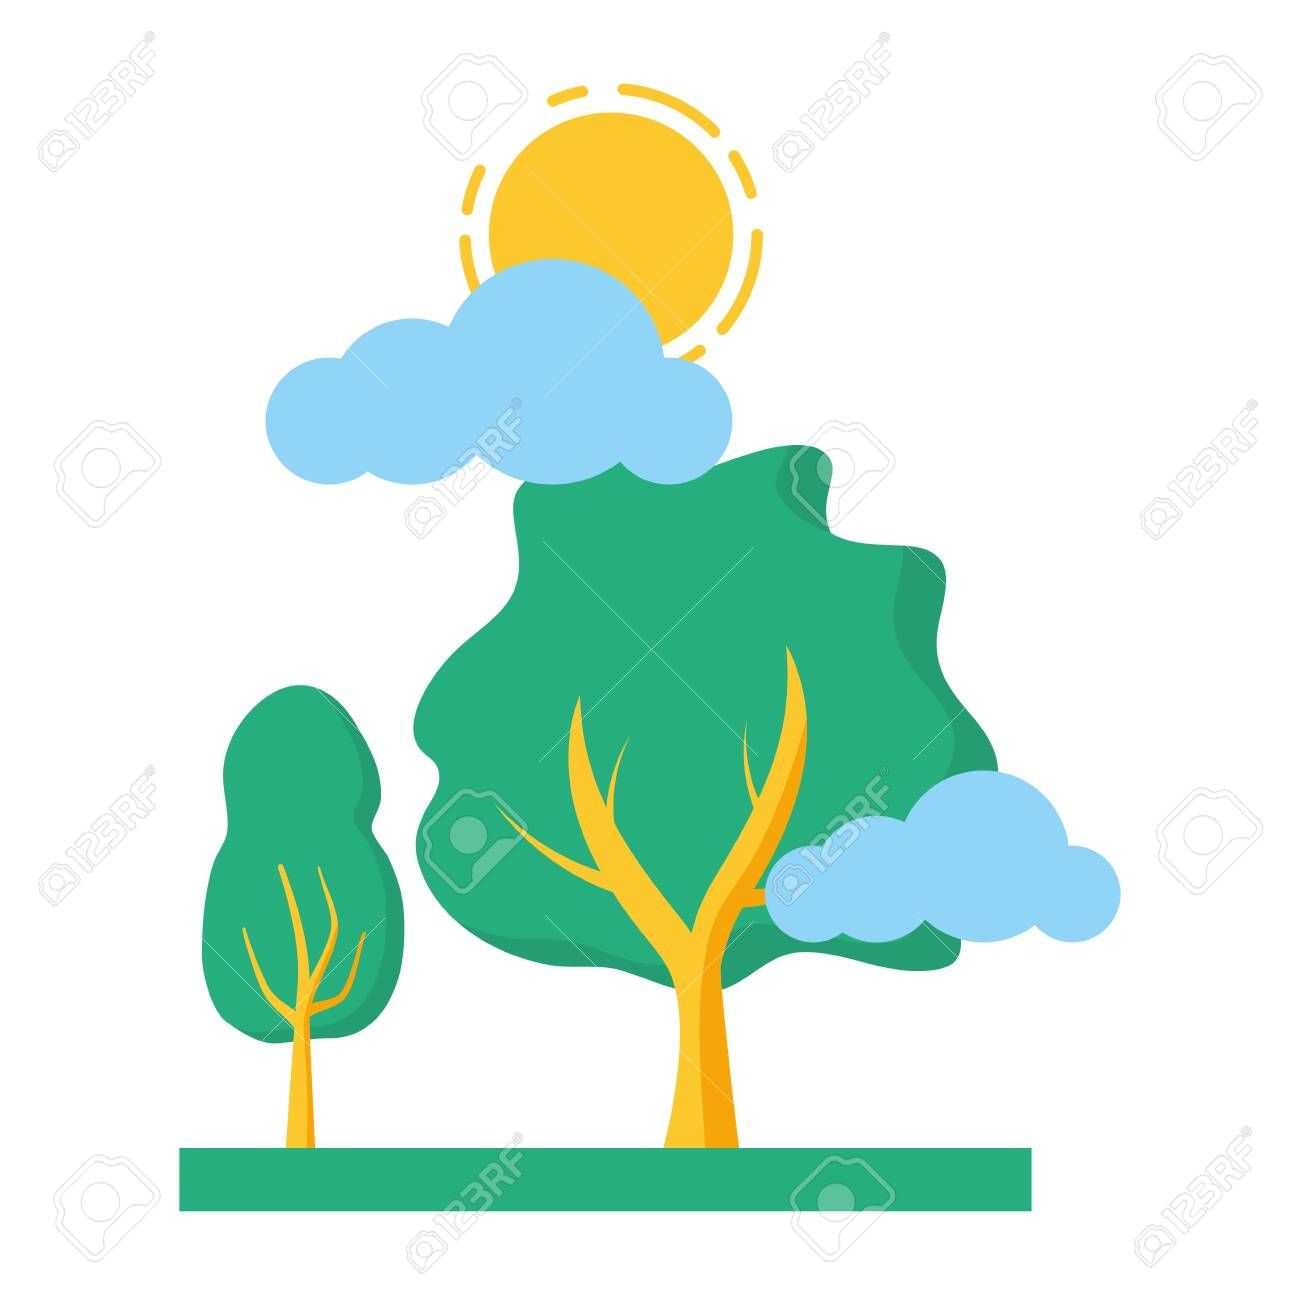 Trees Nature Sky Clouds Sun Vector Illustration Ad Sky